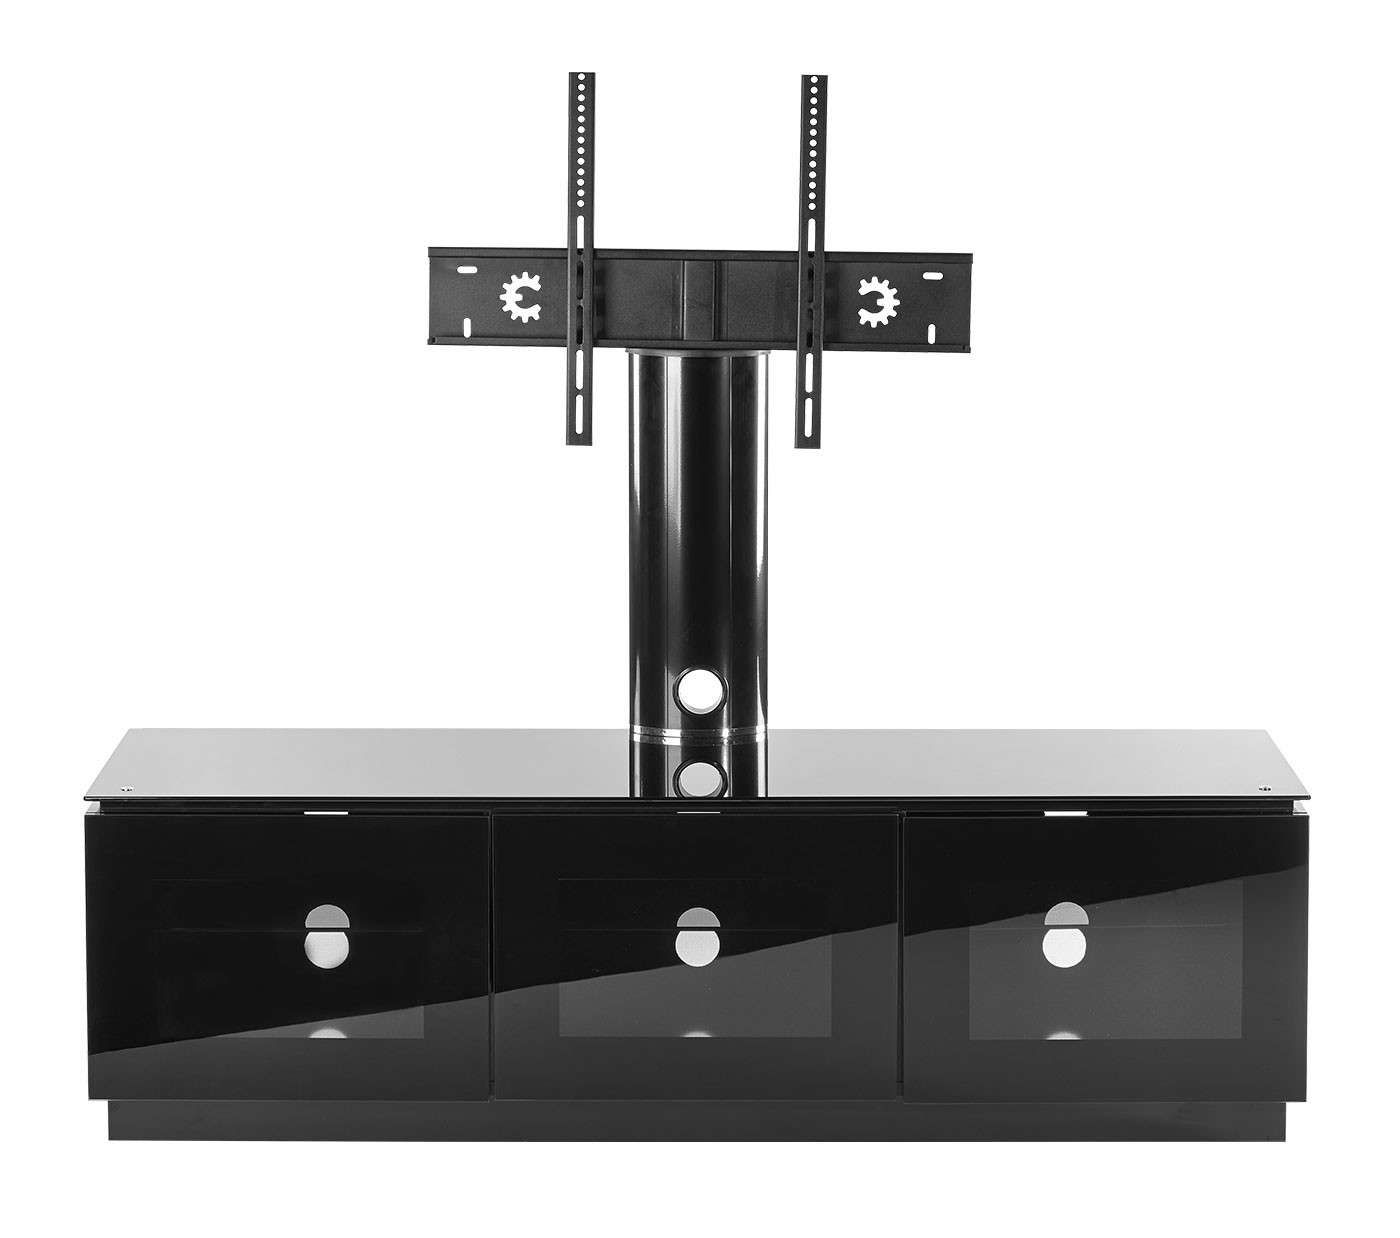 Black Tv Cabinet With Mount For Up To 65 Inch Tv | Mmt D1500 Xarm With Regard To Tv Stands With Mount (View 4 of 15)